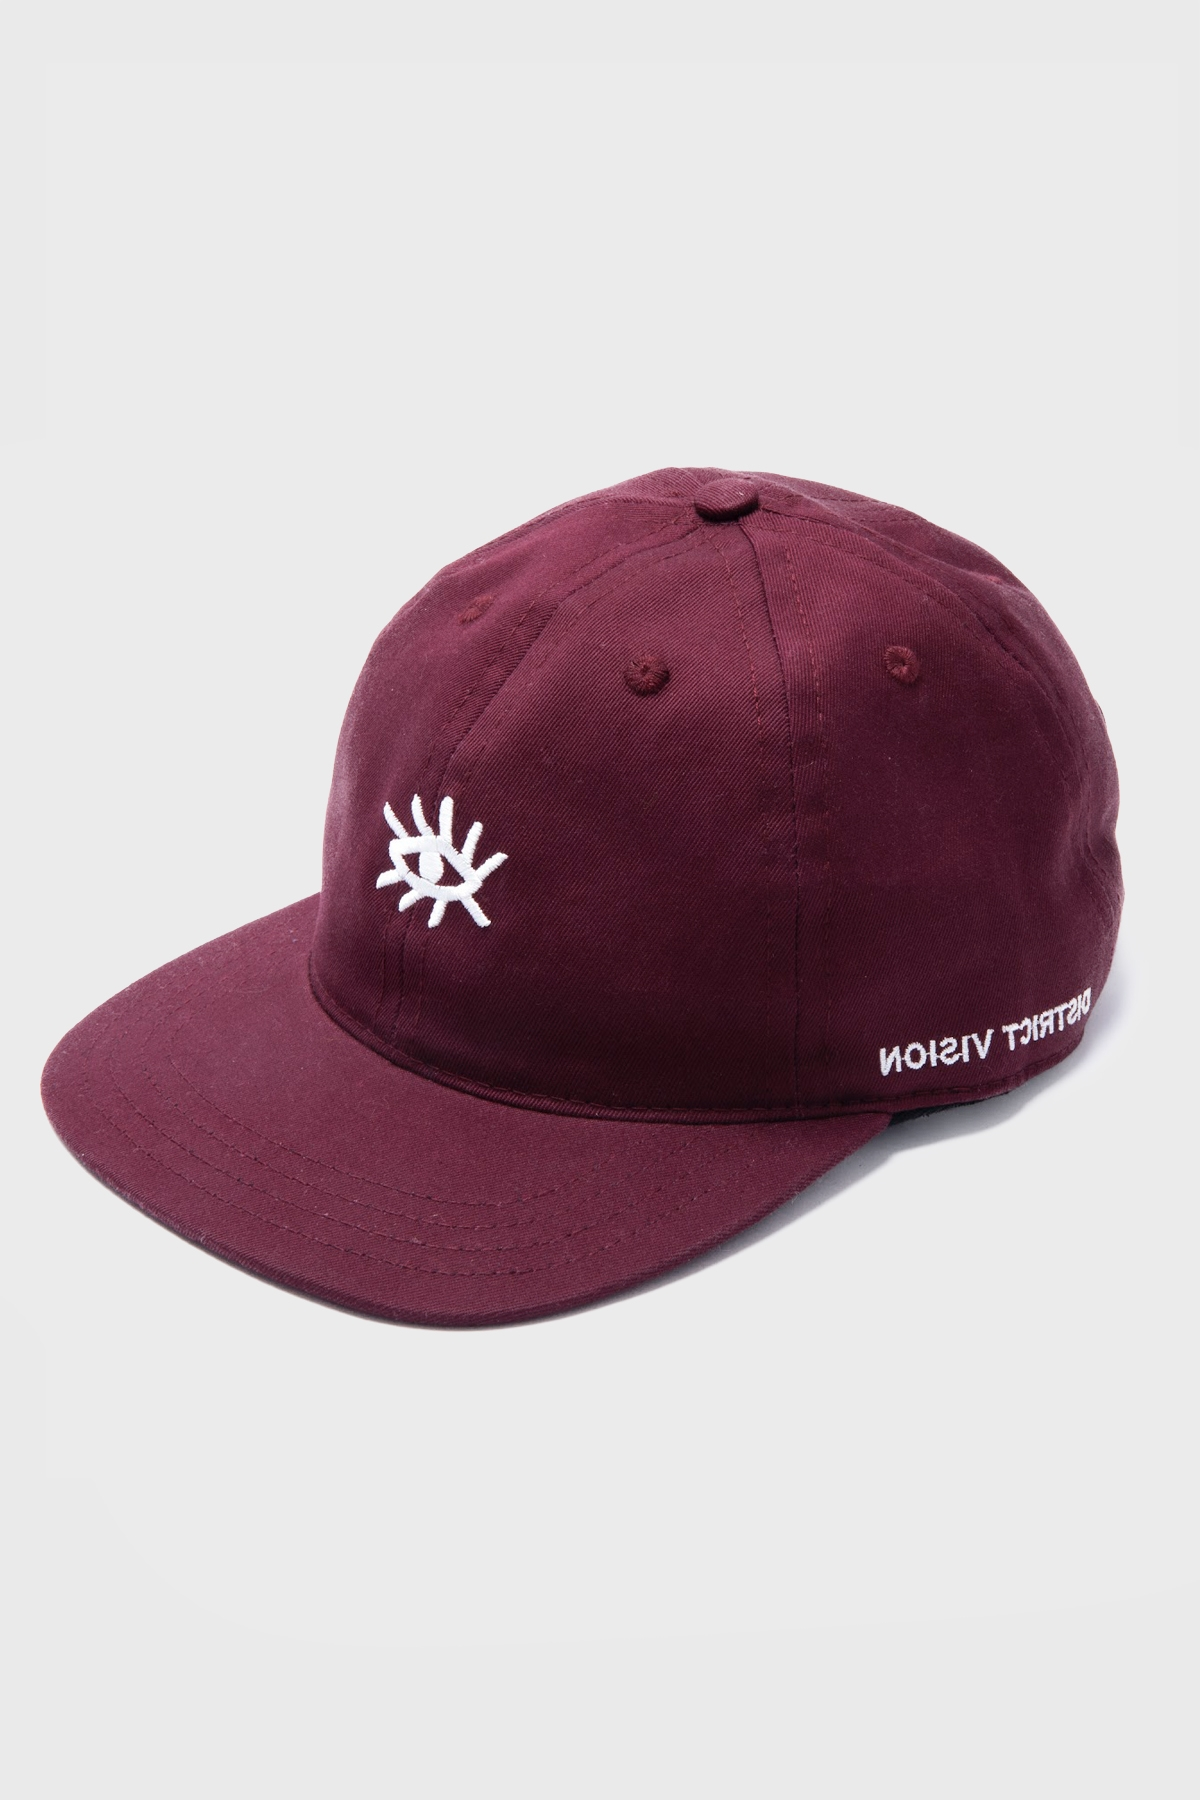 District Vision - Zen slow cap - Burgundy